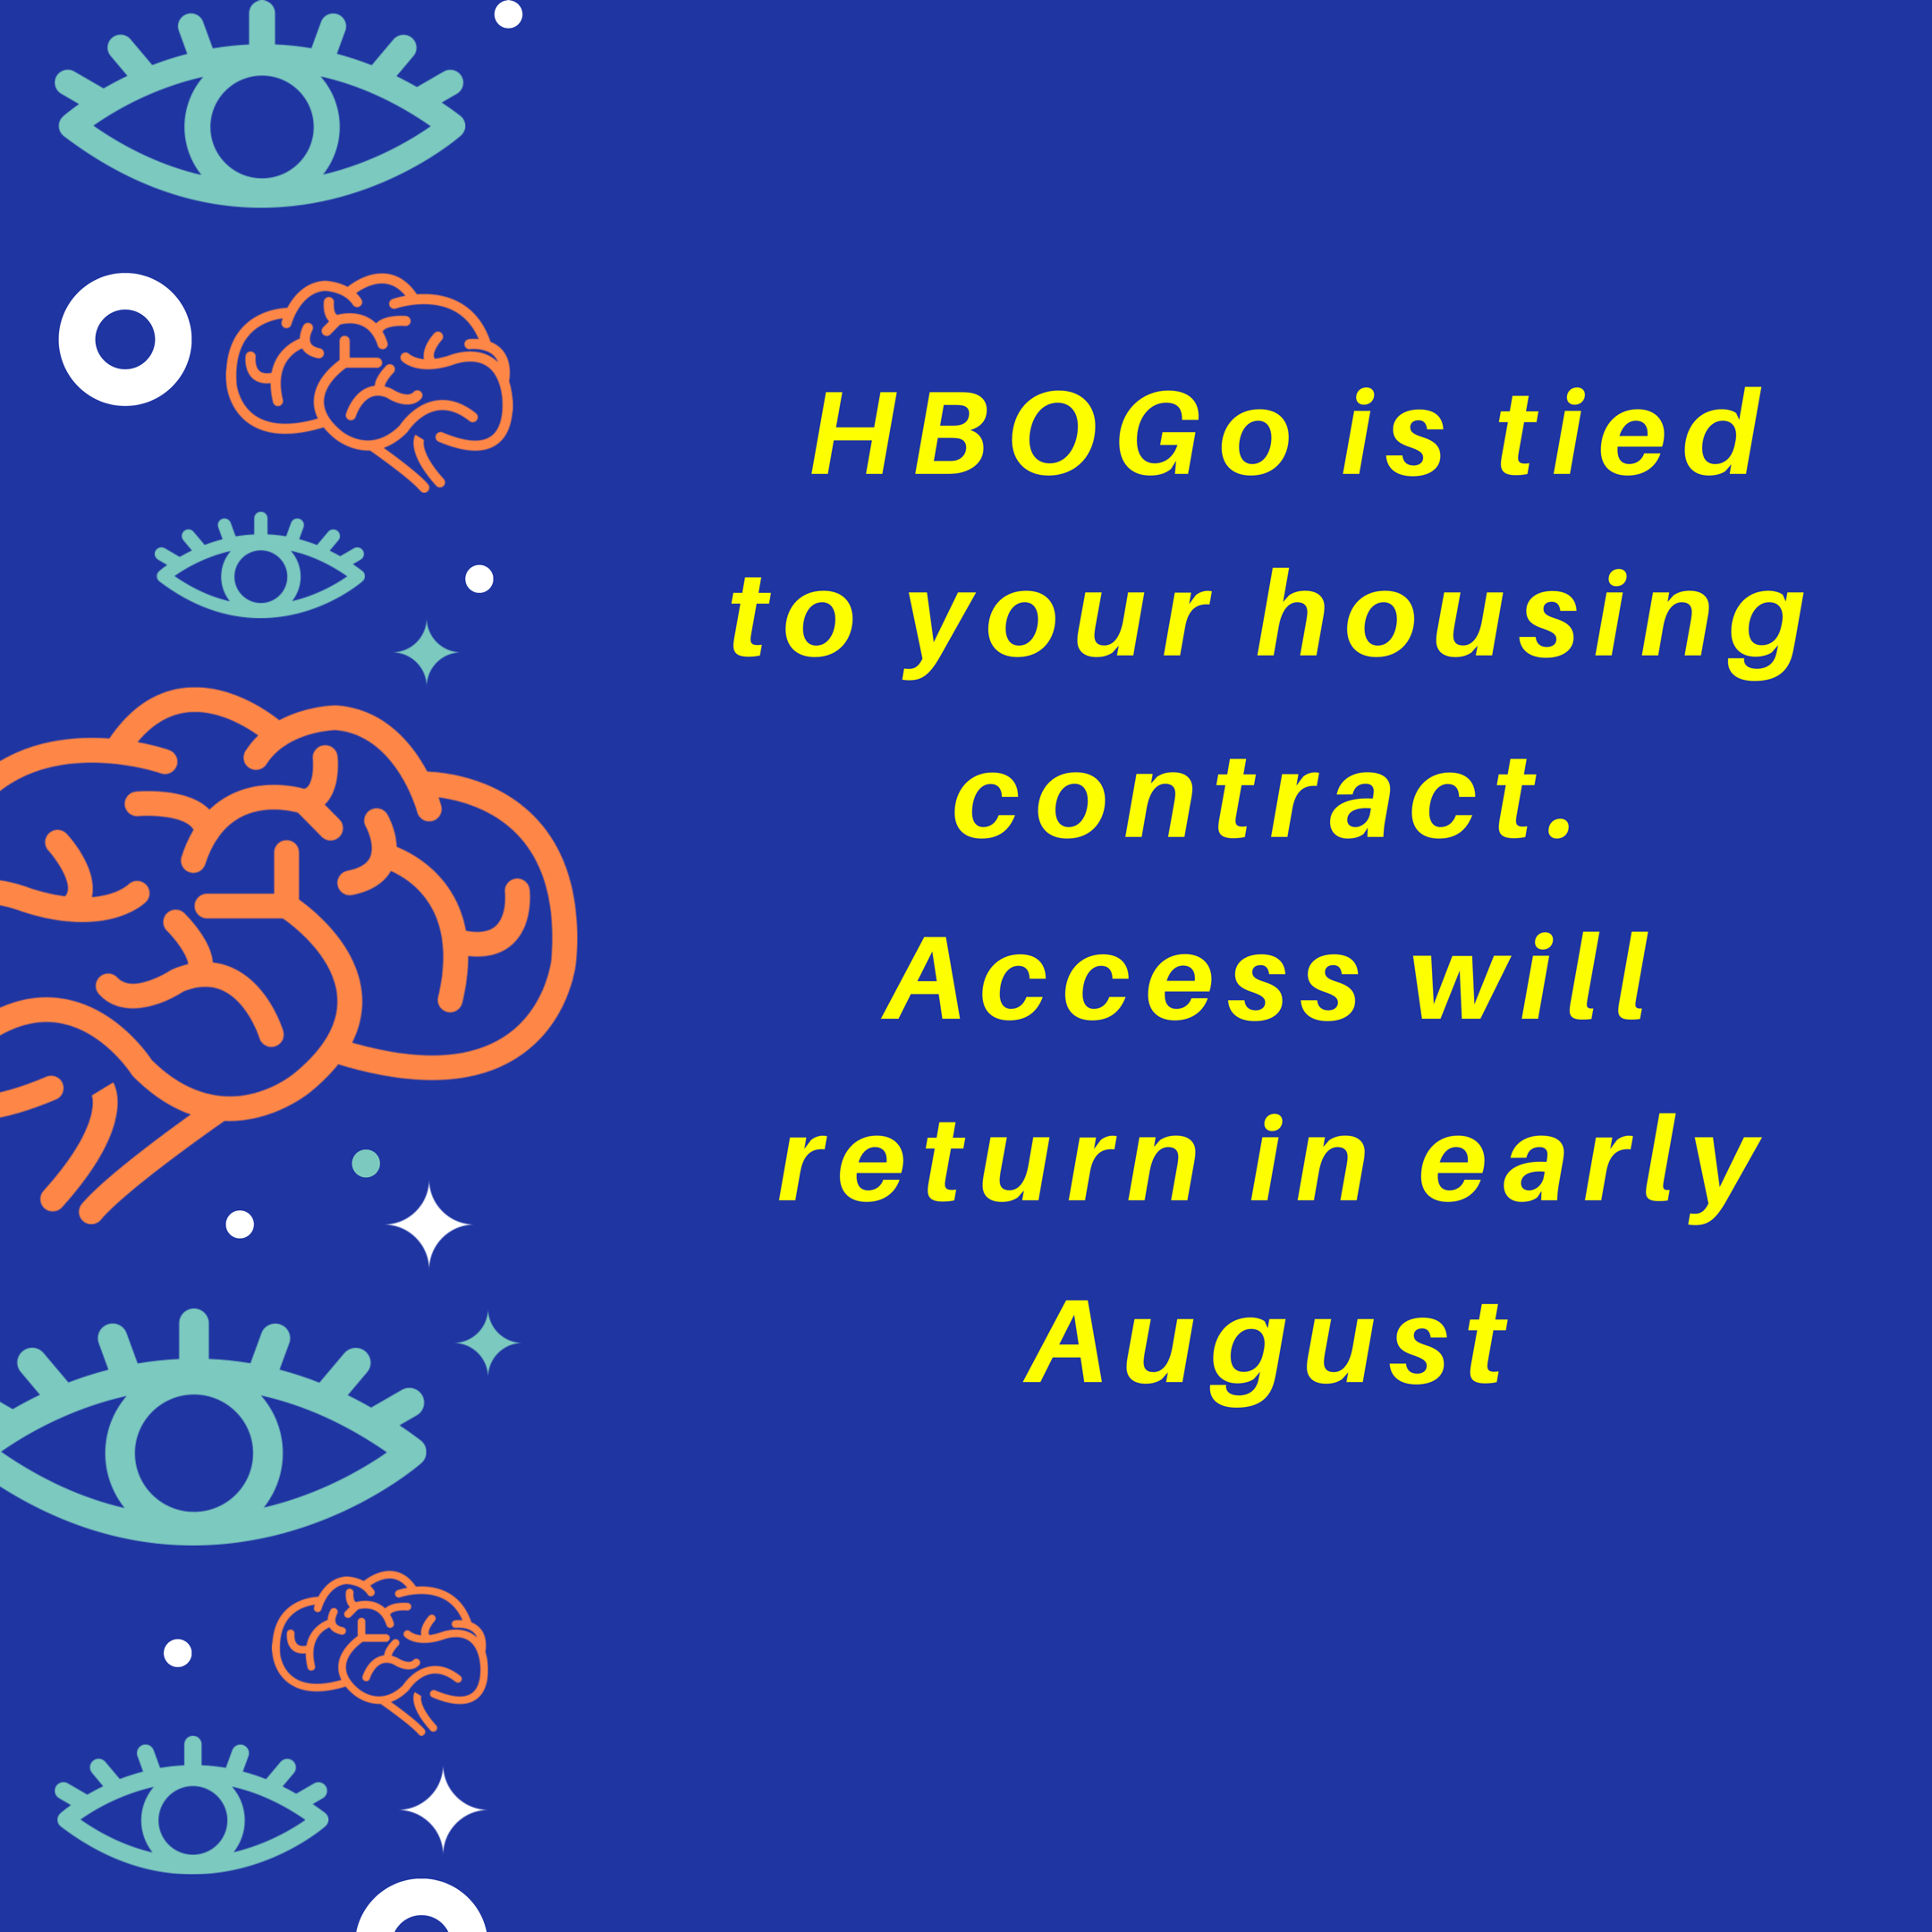 HBO Go is tied to your housing contract.  It will be available again in early August